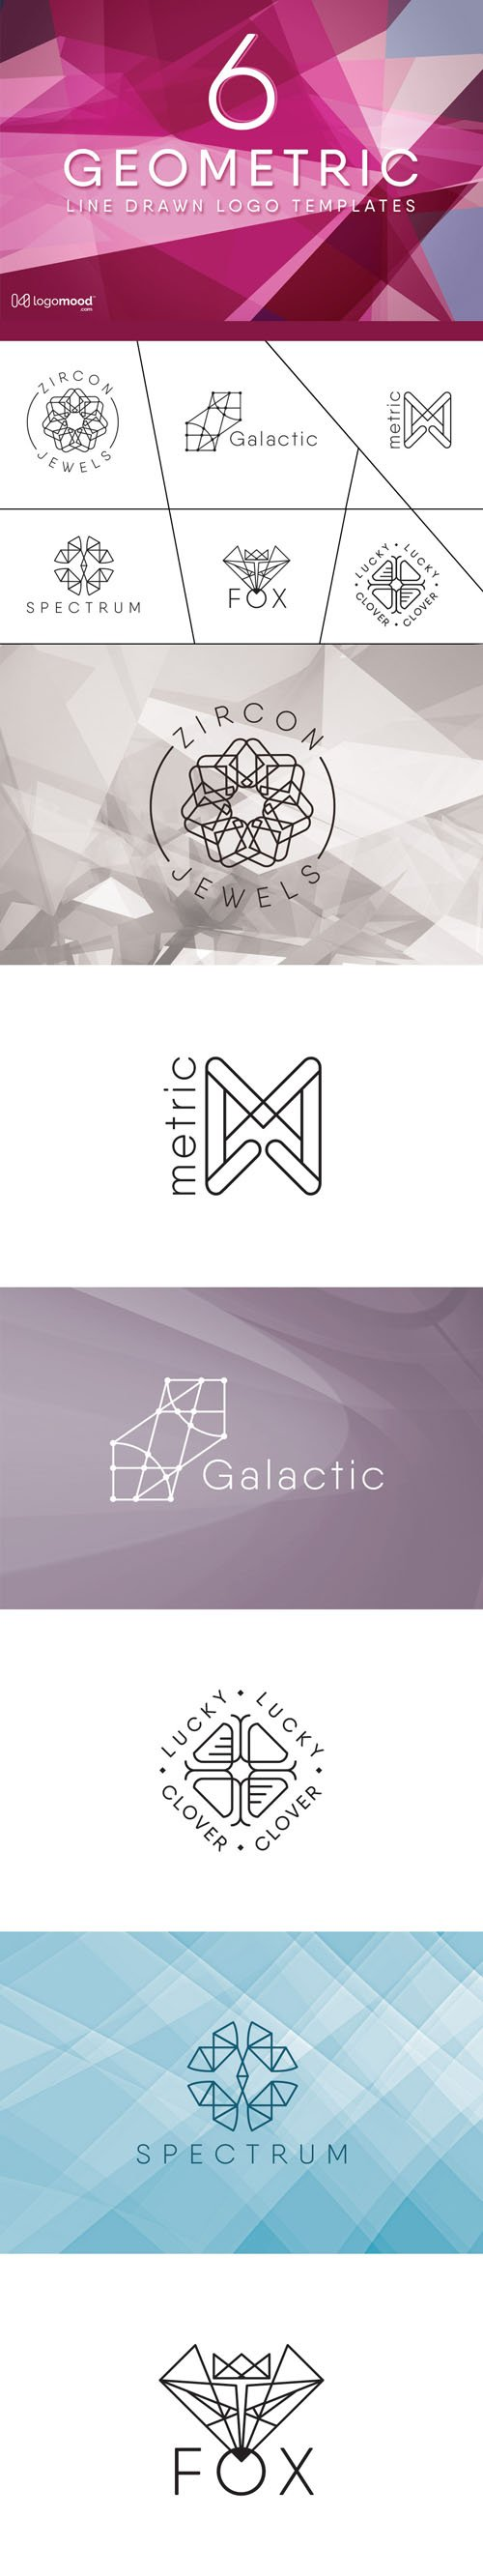 6 Geometric Line Drawn Logo Templates in Vector